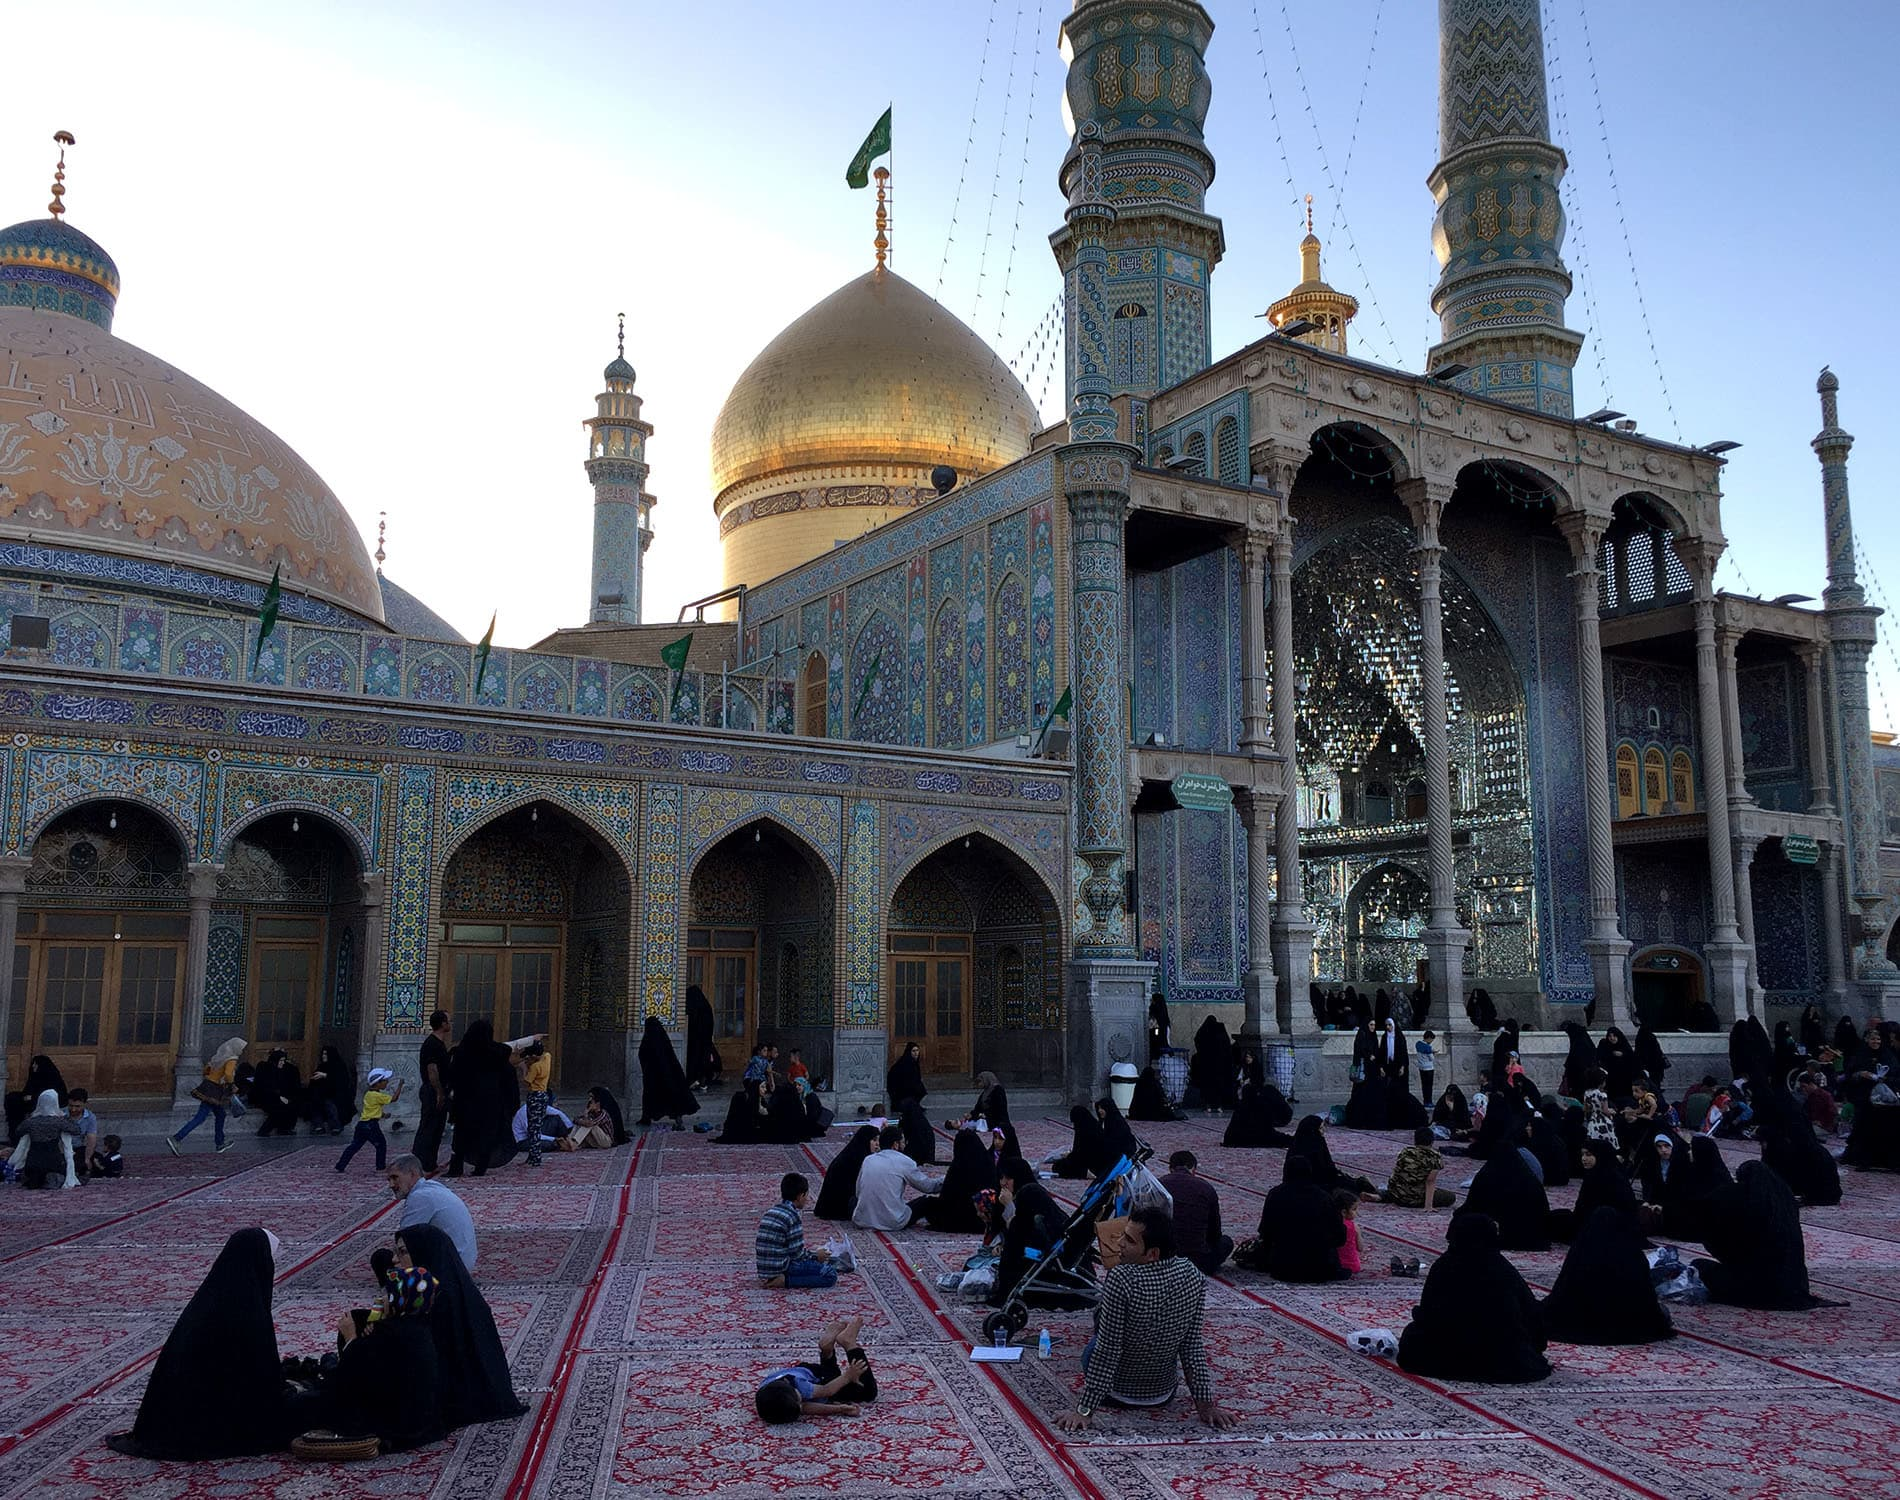 Fatima Masoumeh shrine in Qom houses the tomb of the sister of the eighth Shia Imam Reza. The shrine is the largest and most important shrine to a female saint in Iran, receiving around 20 million pilgrims yearly.